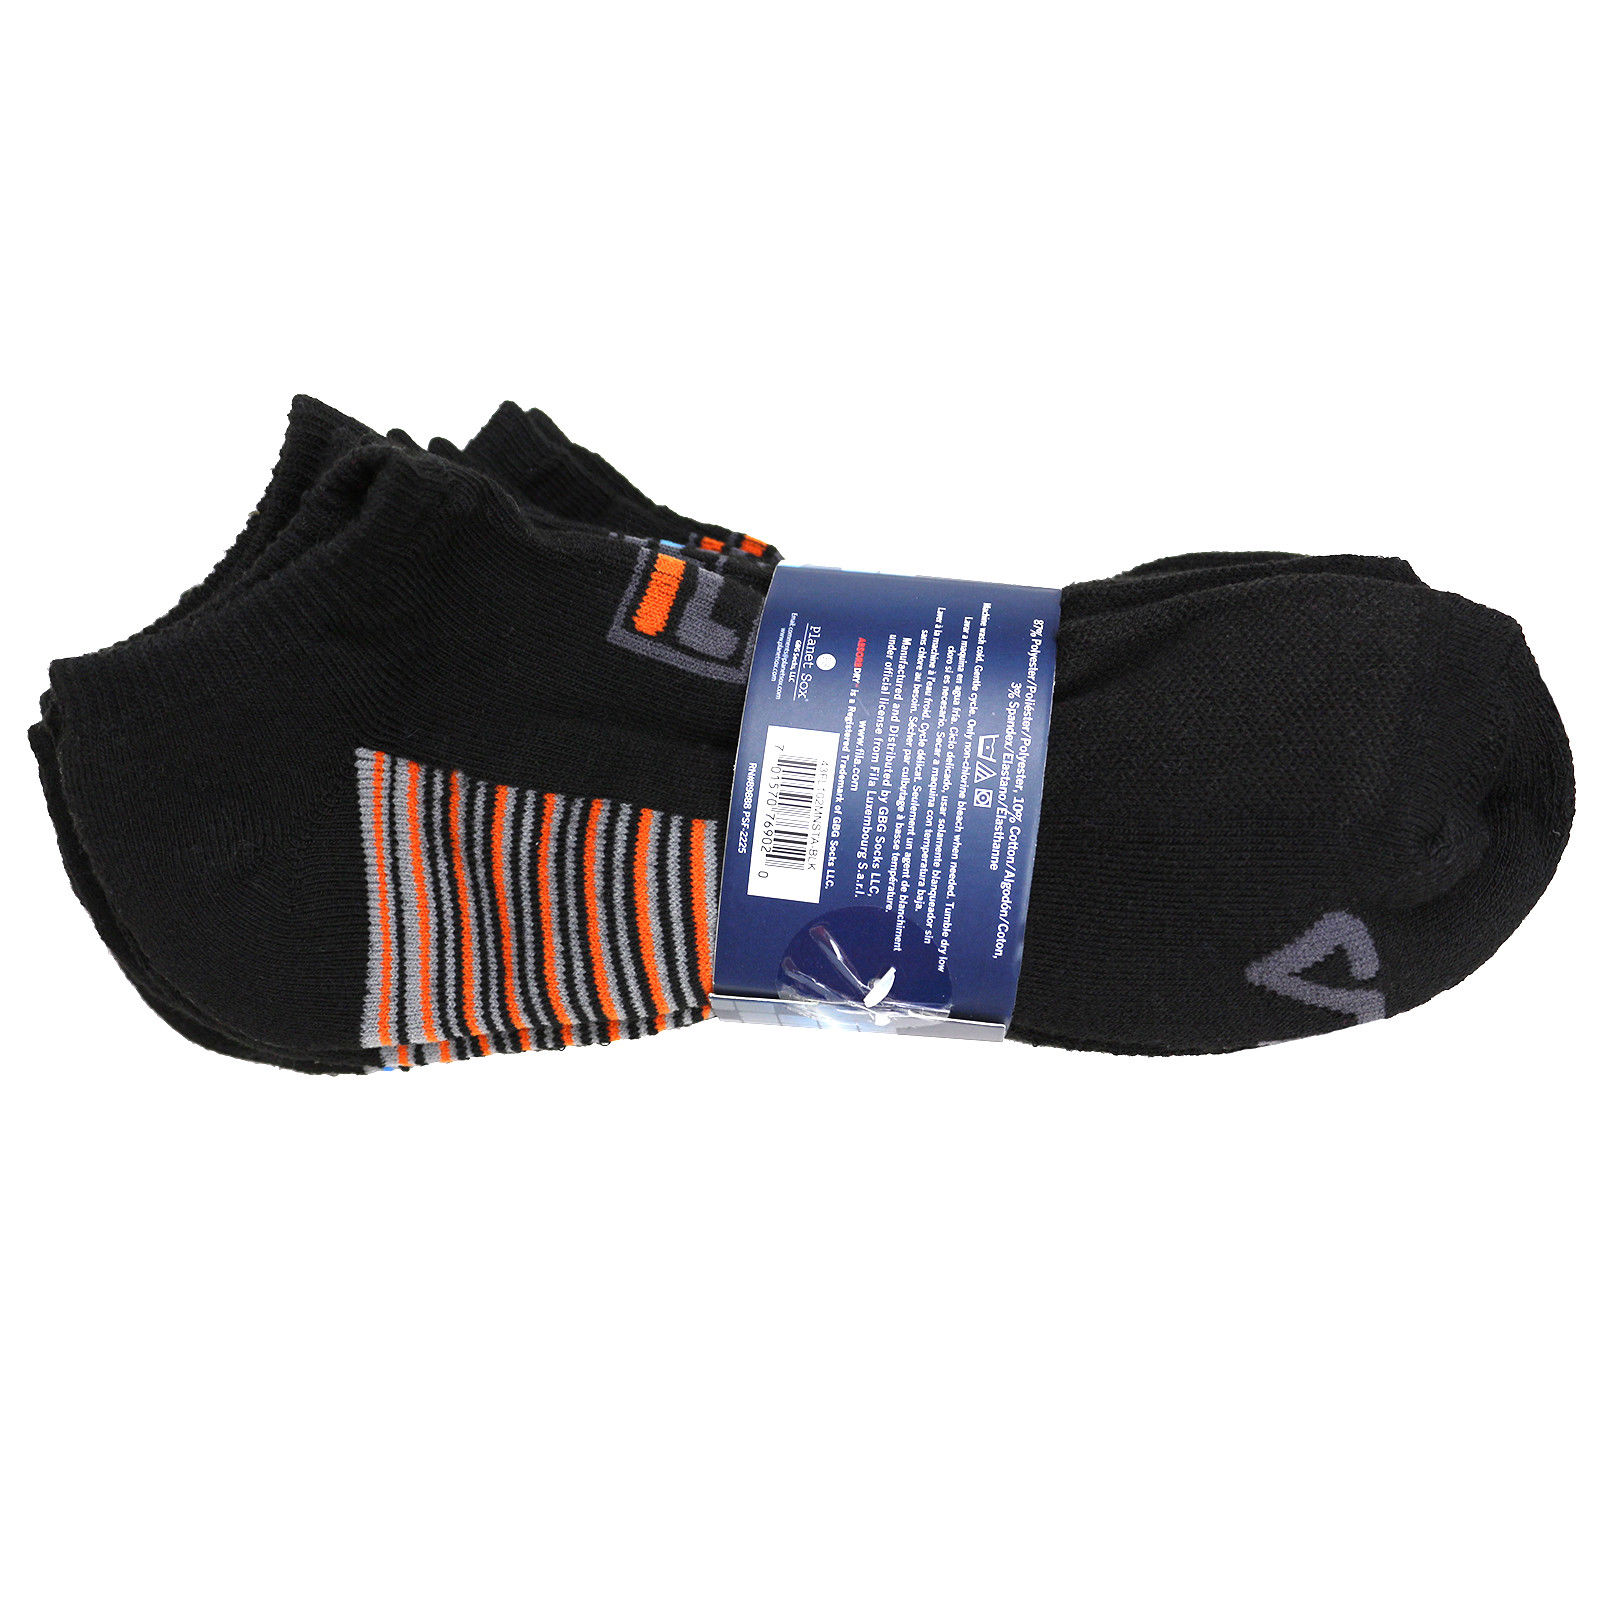 FILA-Men-039-s-6-Pack-Classic-Sport-Athletic-Gym-Moisture-Control-Absorb-Dry-Socks miniature 4